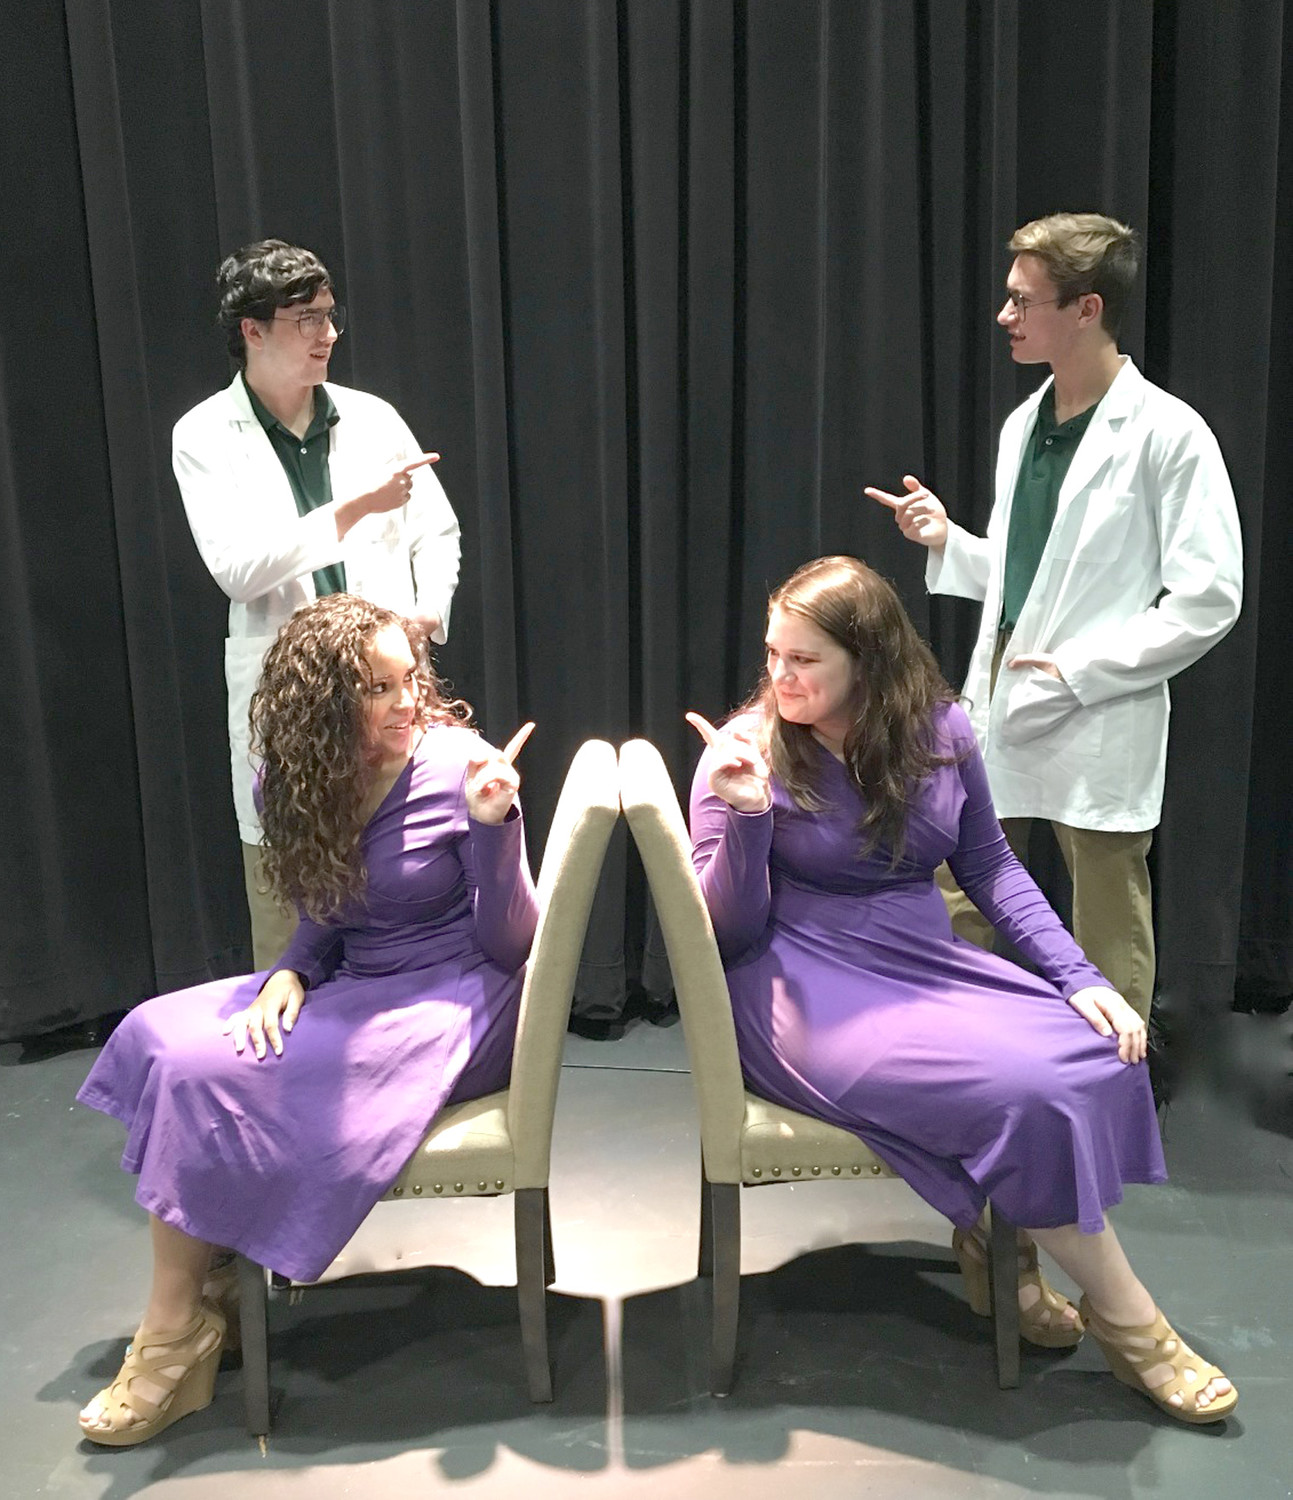 During rehearsal, Lee students Scott Rust, Jake Cash, Hannah Wiggonton, and Gabby McDonald realize they are seeing double in Enigma Variations.